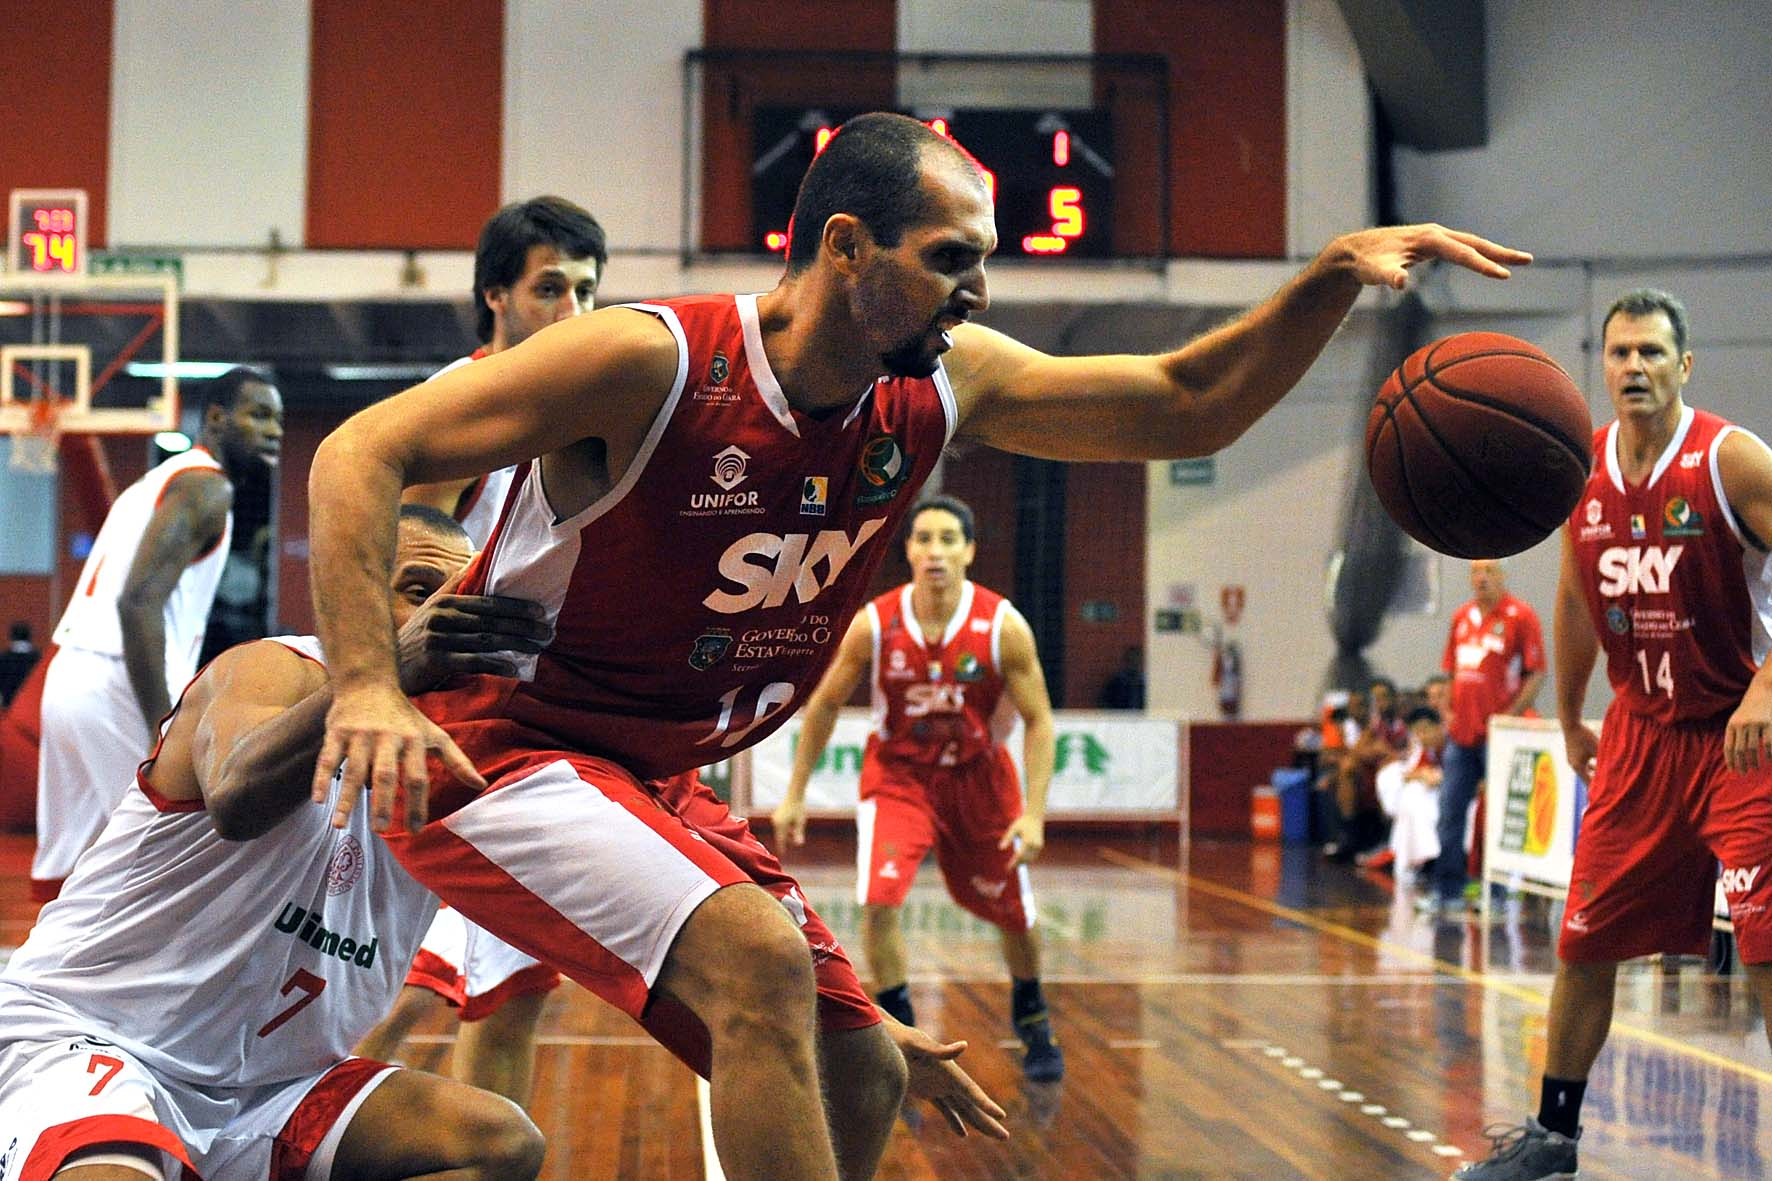 Drudi, do Basquete Cearense